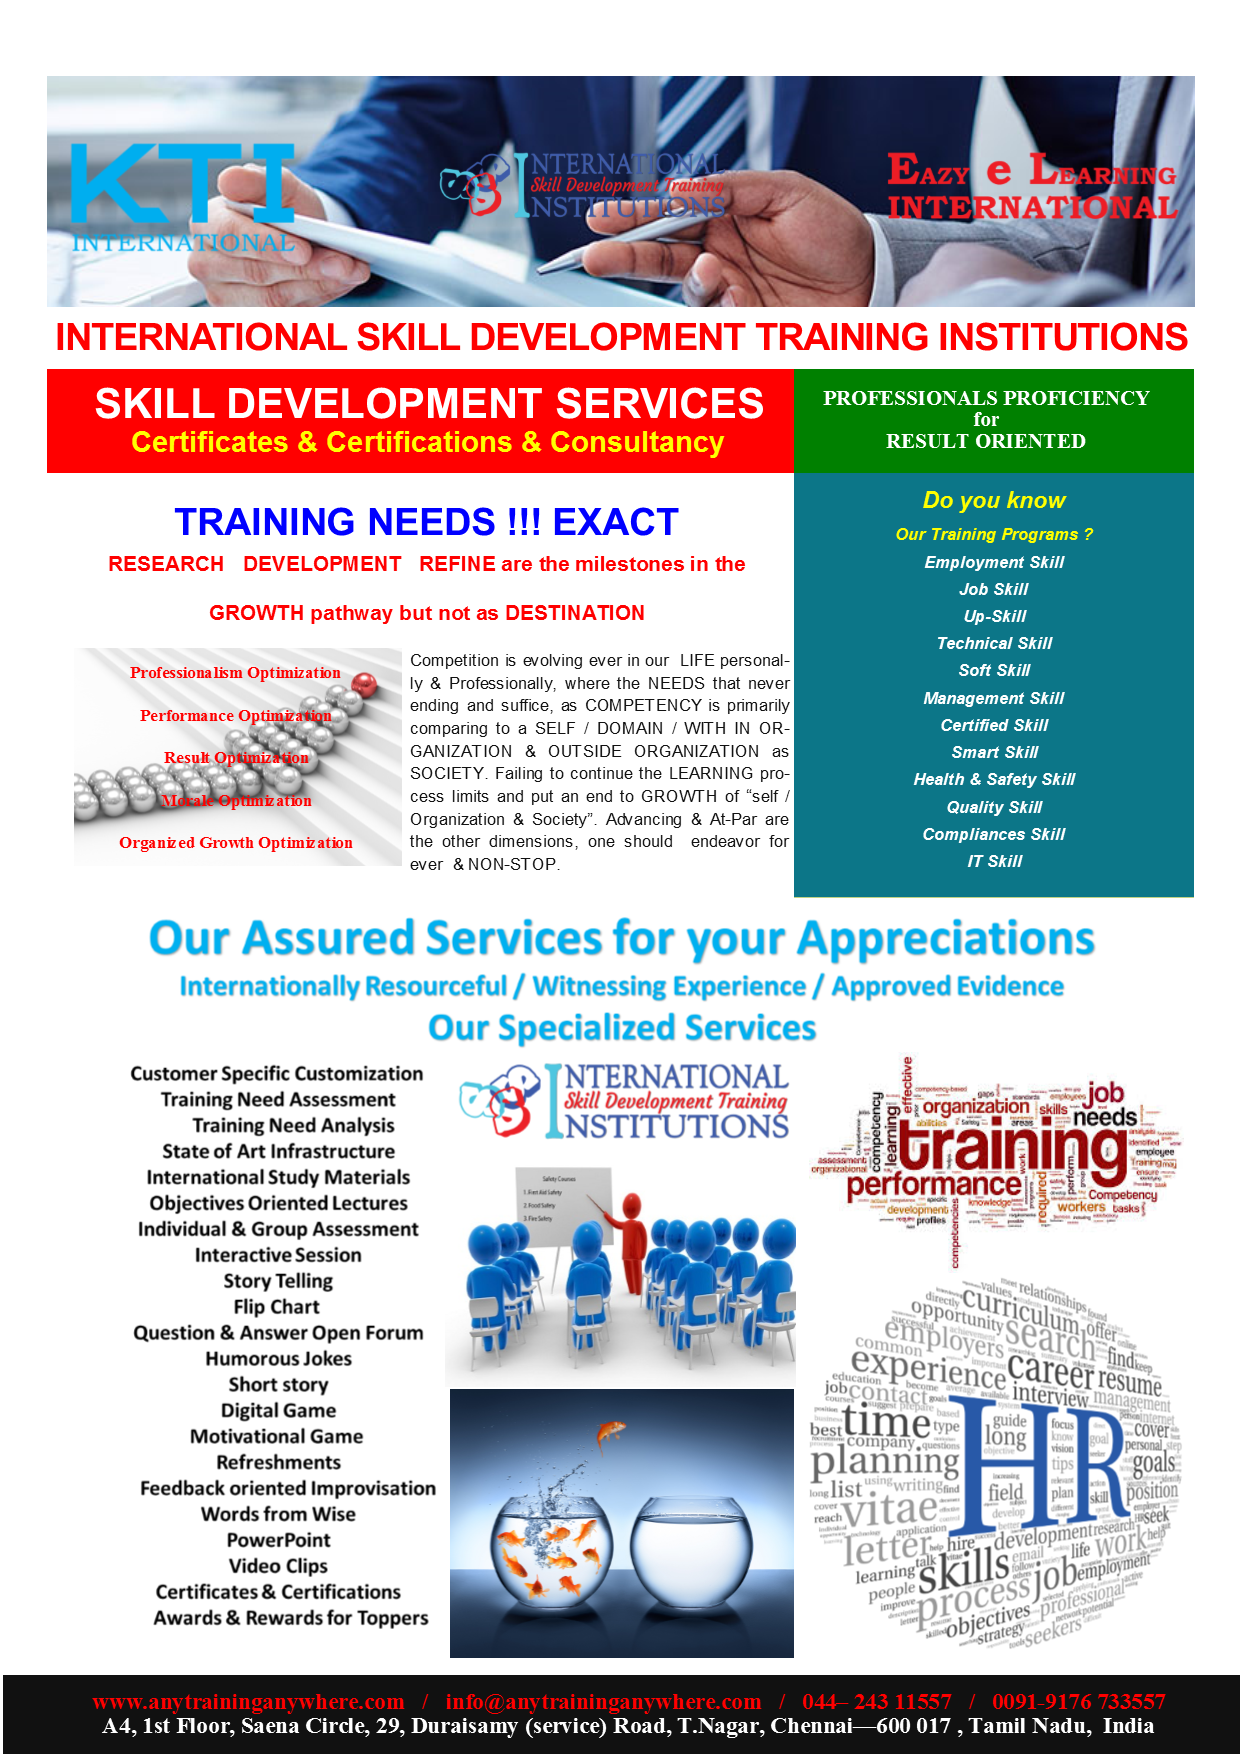 International skill development training institutions chennai best we are management skills training program in india and best training institute in india also has skill based programs for corporate and for institutions 1betcityfo Gallery